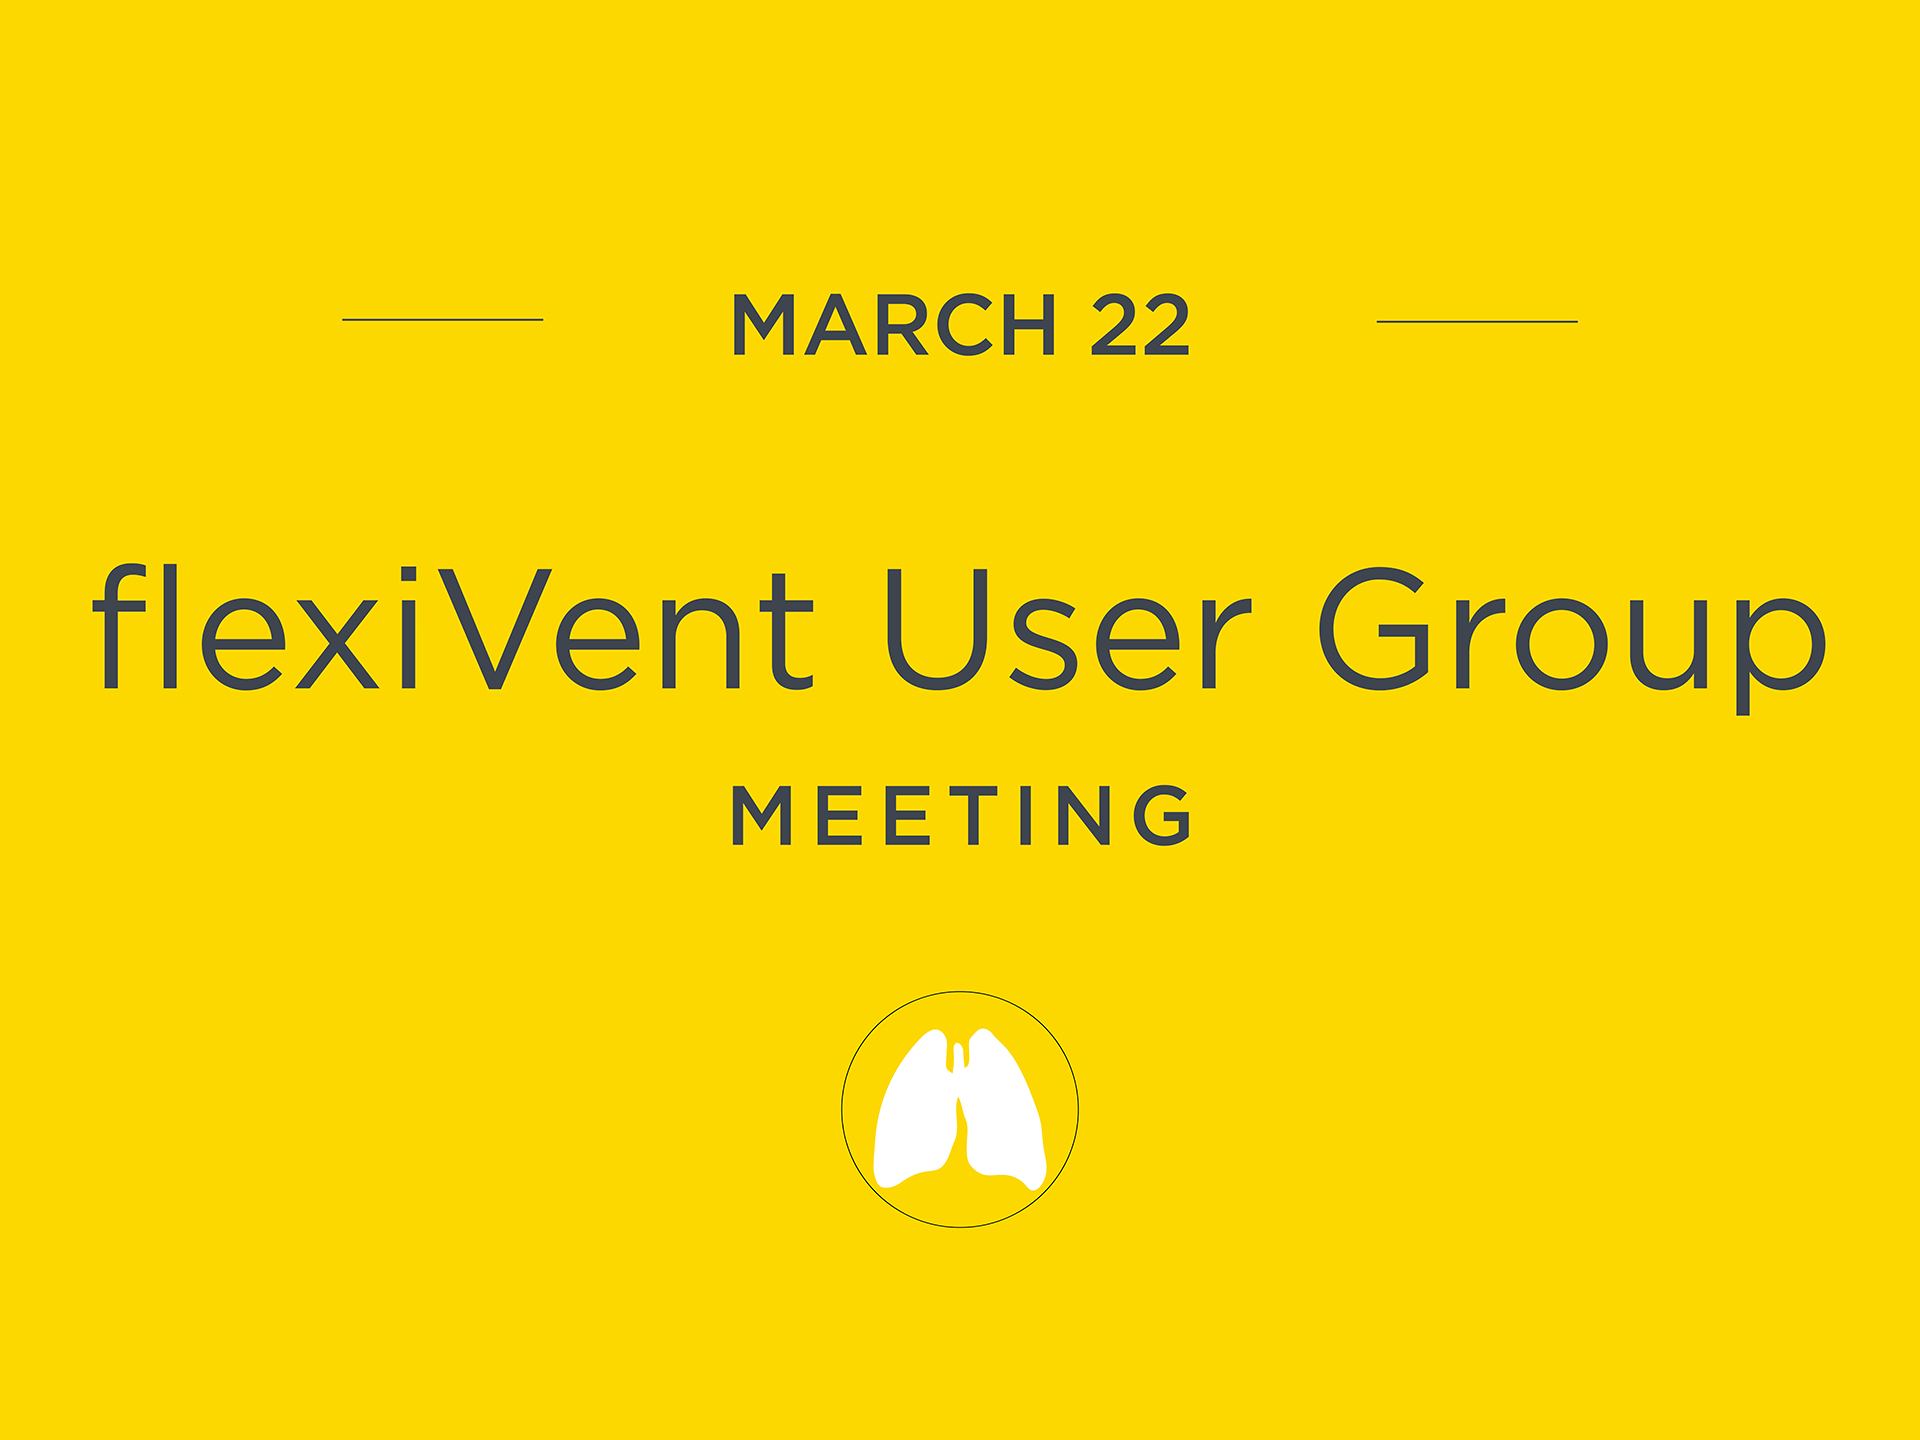 flexiVent User Group Meeting flexiVent UGM2018 22March